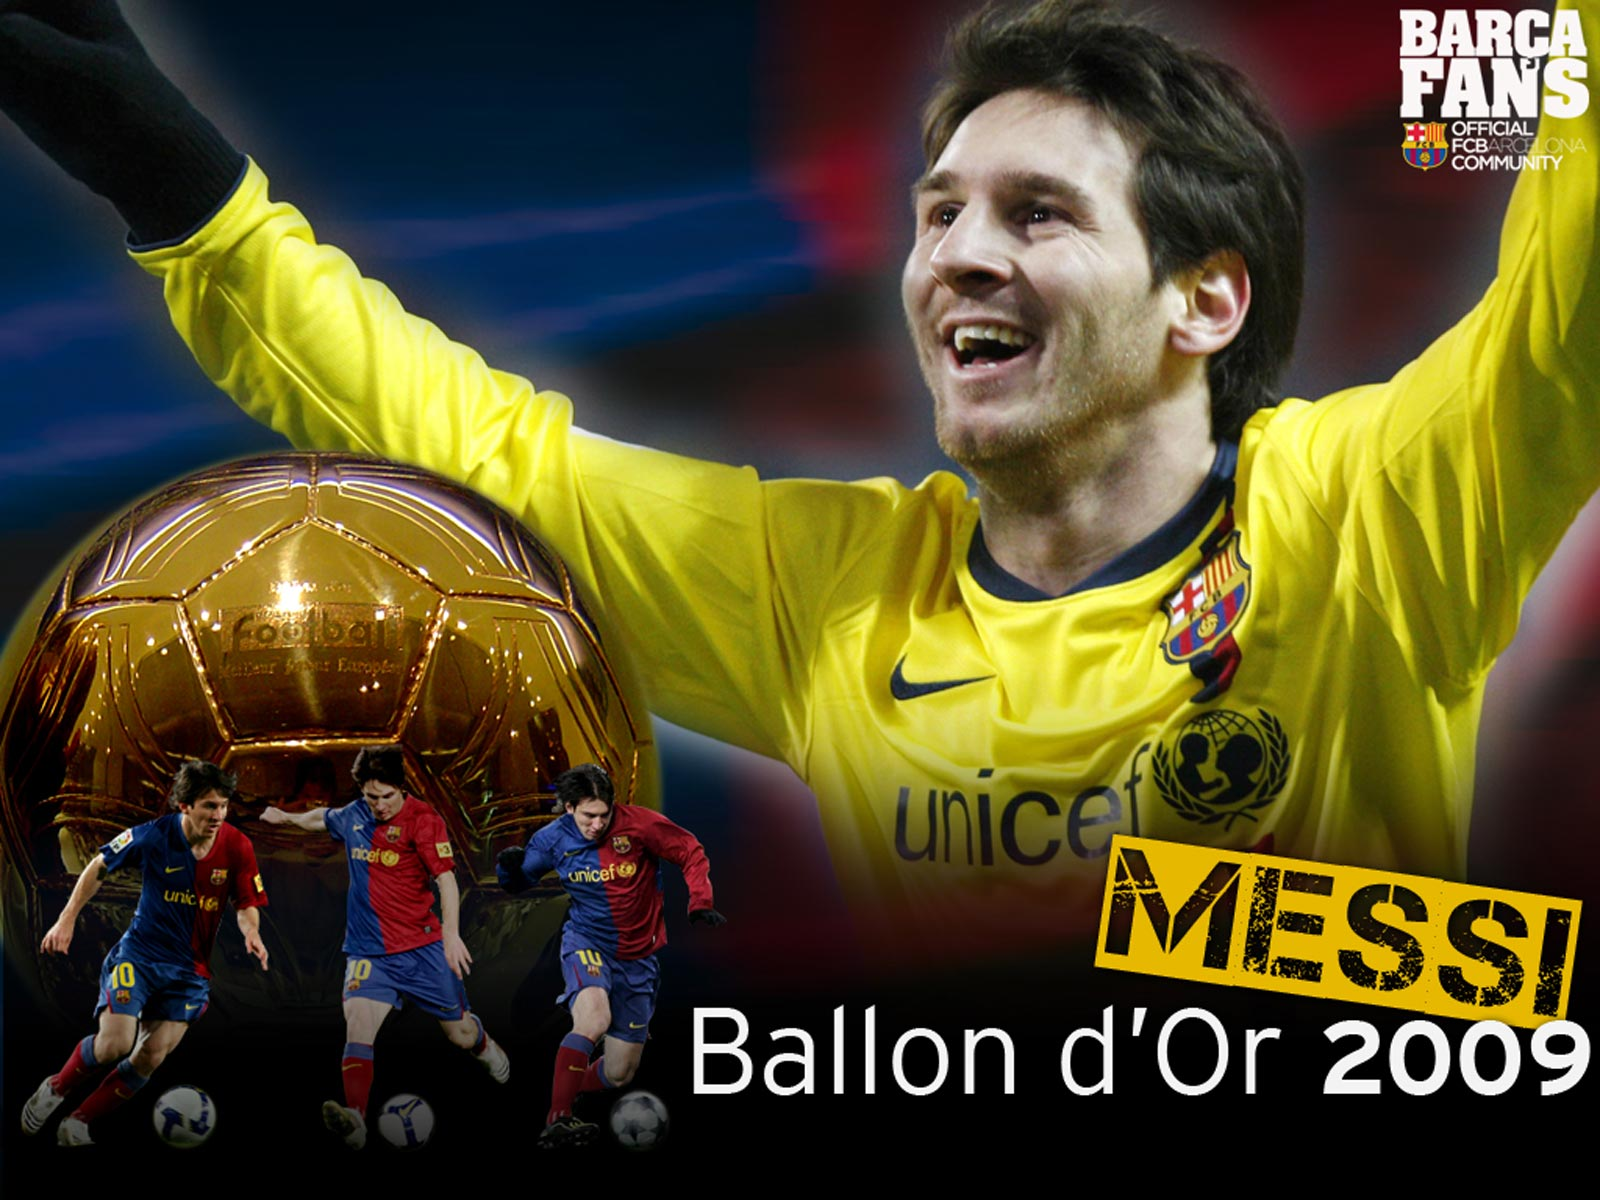 ballon d'or - photo #23